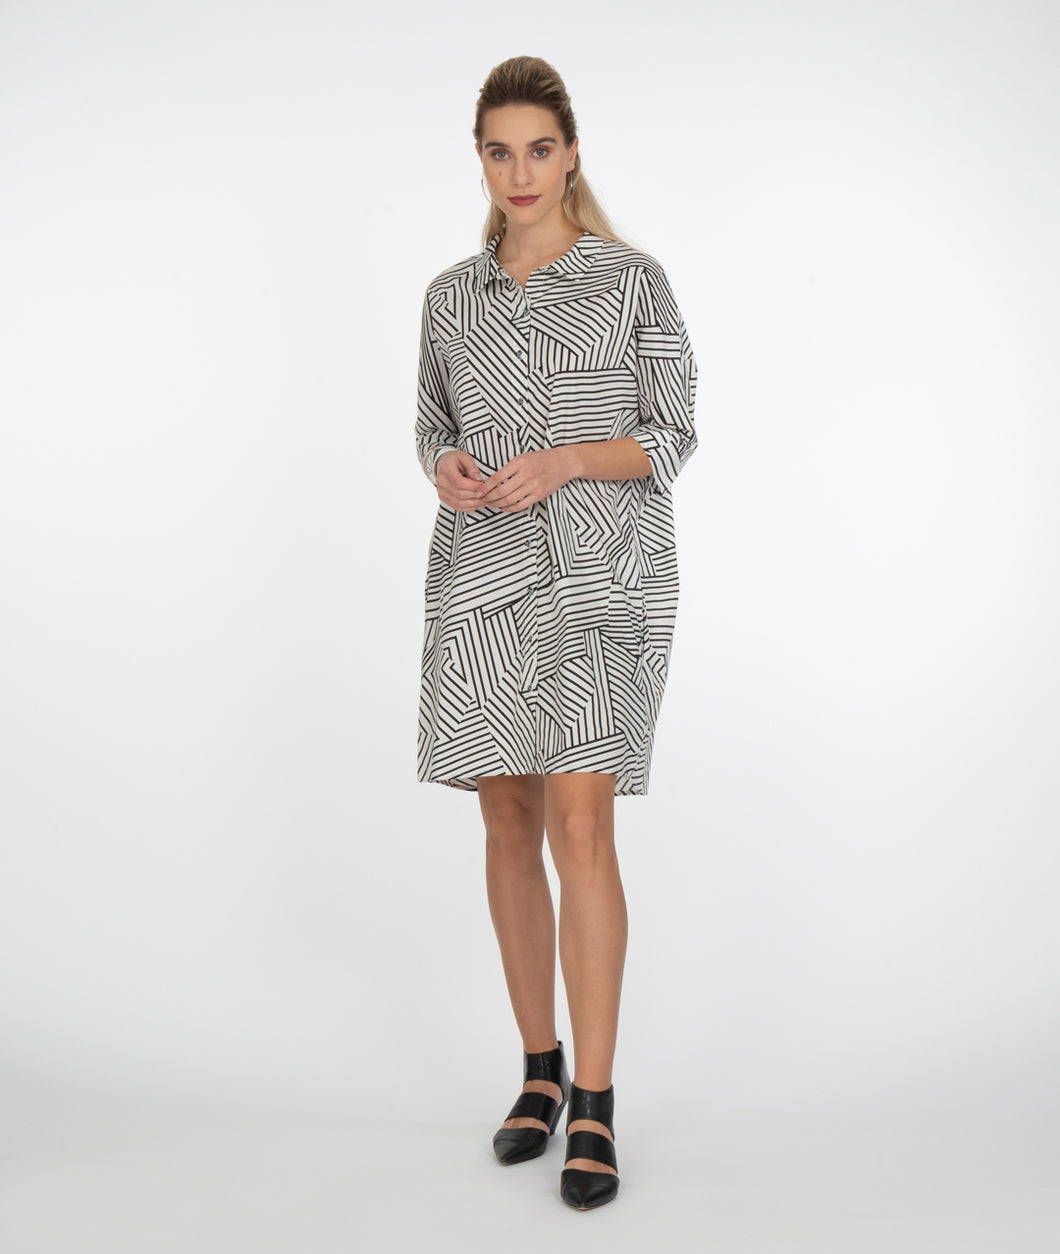 model in a black and white striped button up dress in front of a white background